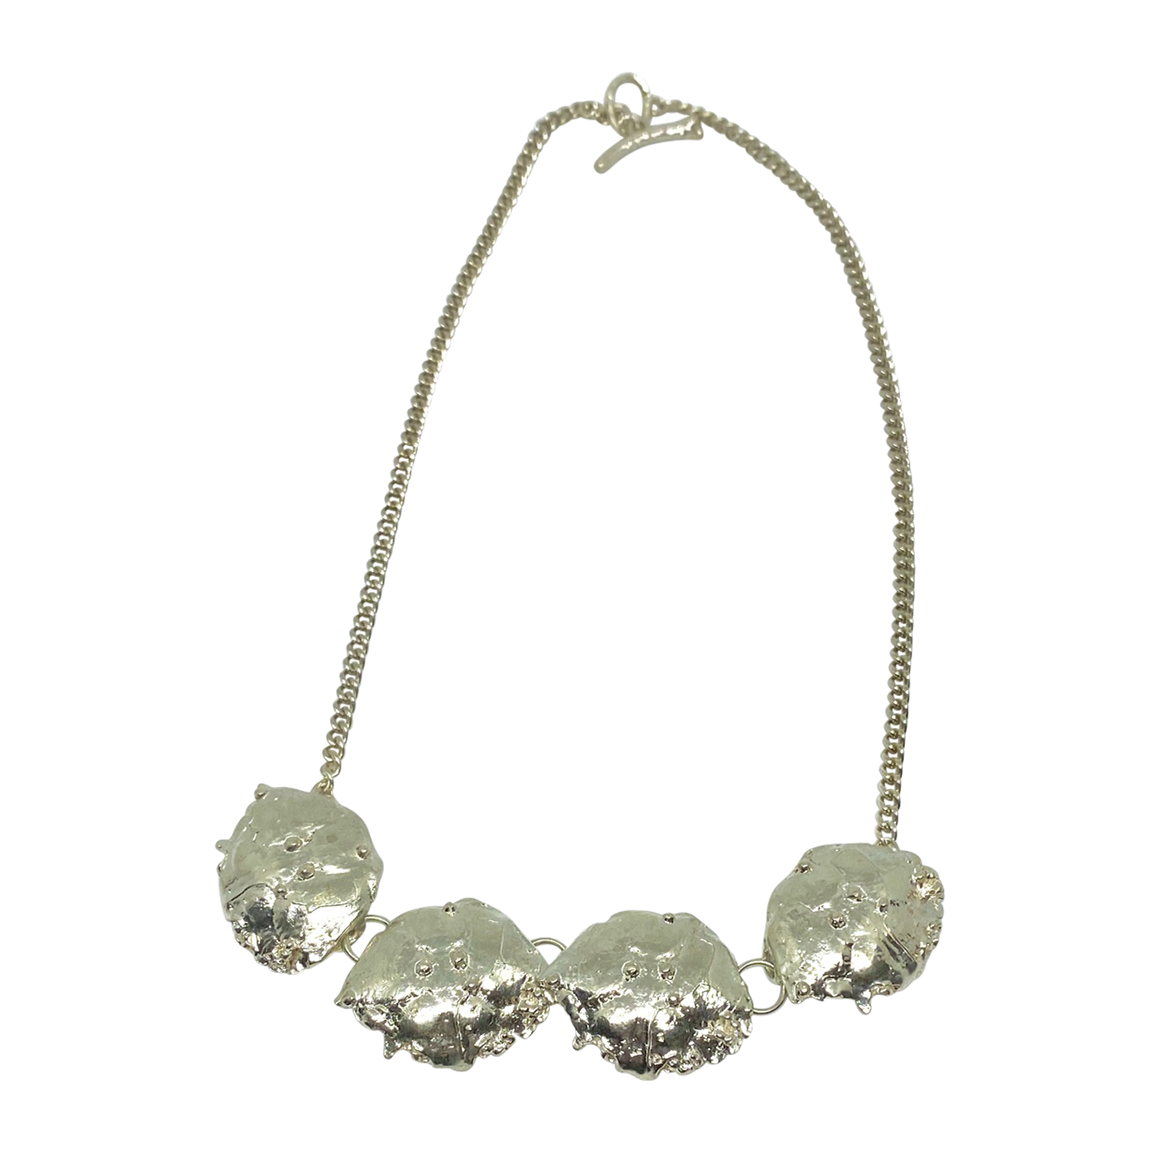 Eily O'Connell Crab Shell Necklace